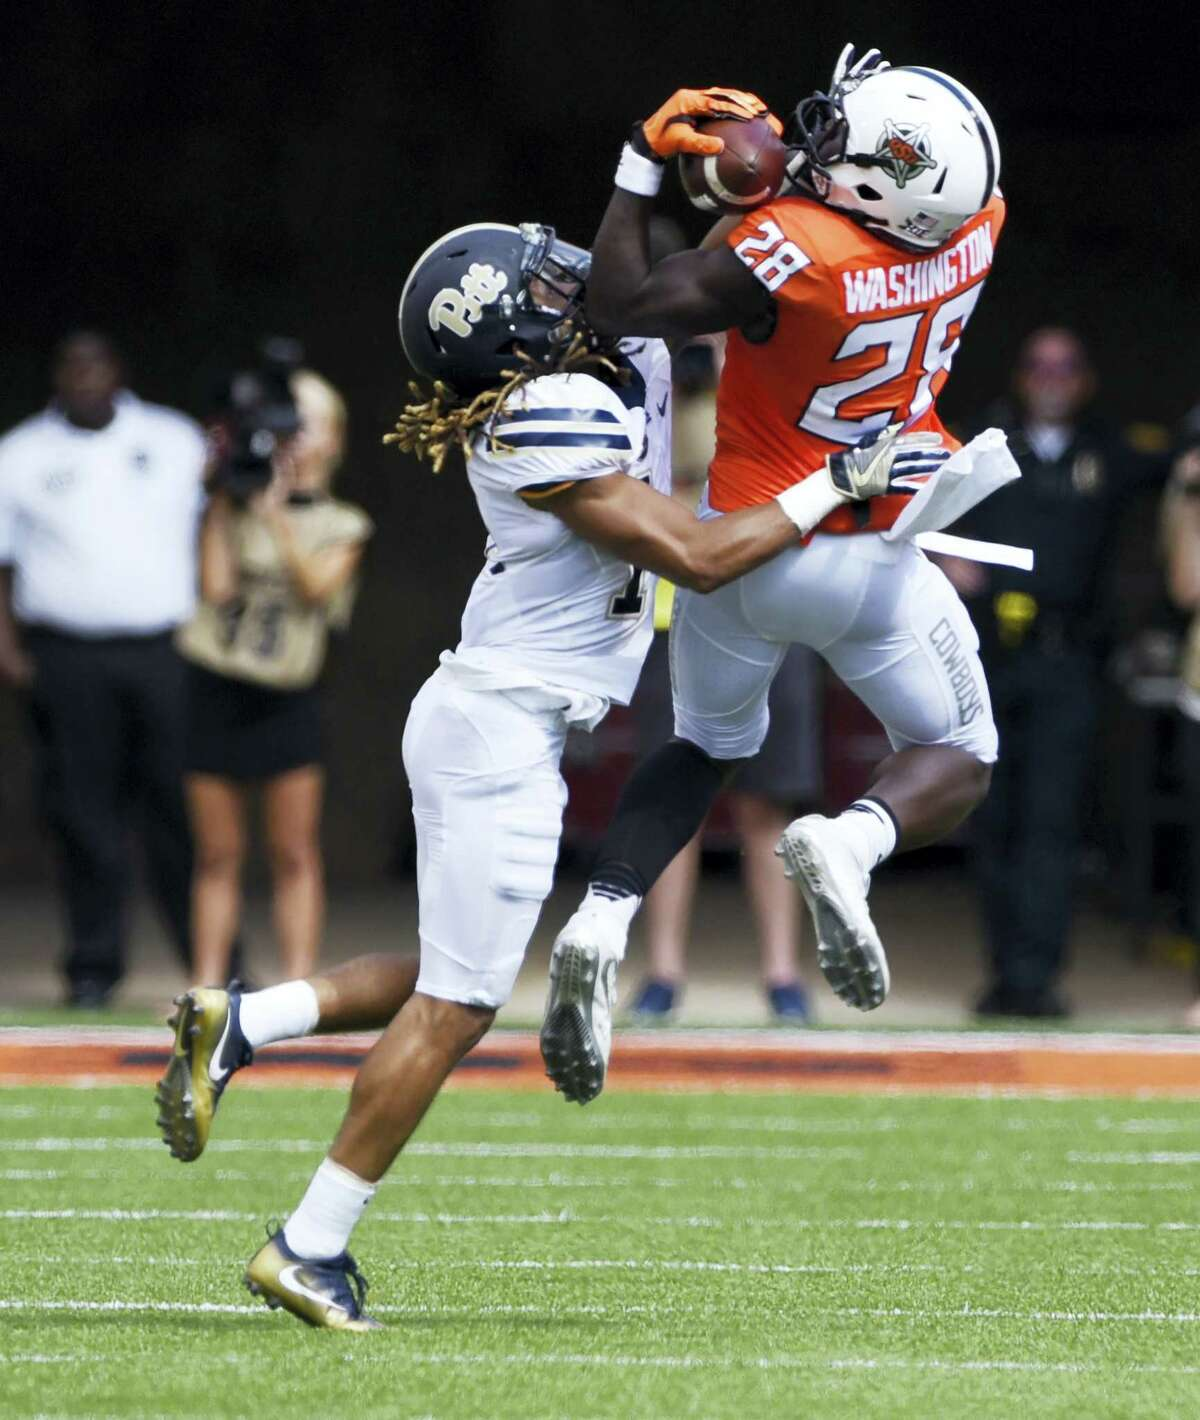 Oklahoma State wide receiver James Washington, right catches a pass while being tackled by Pittsburgh defensive back Avonte Maddox.